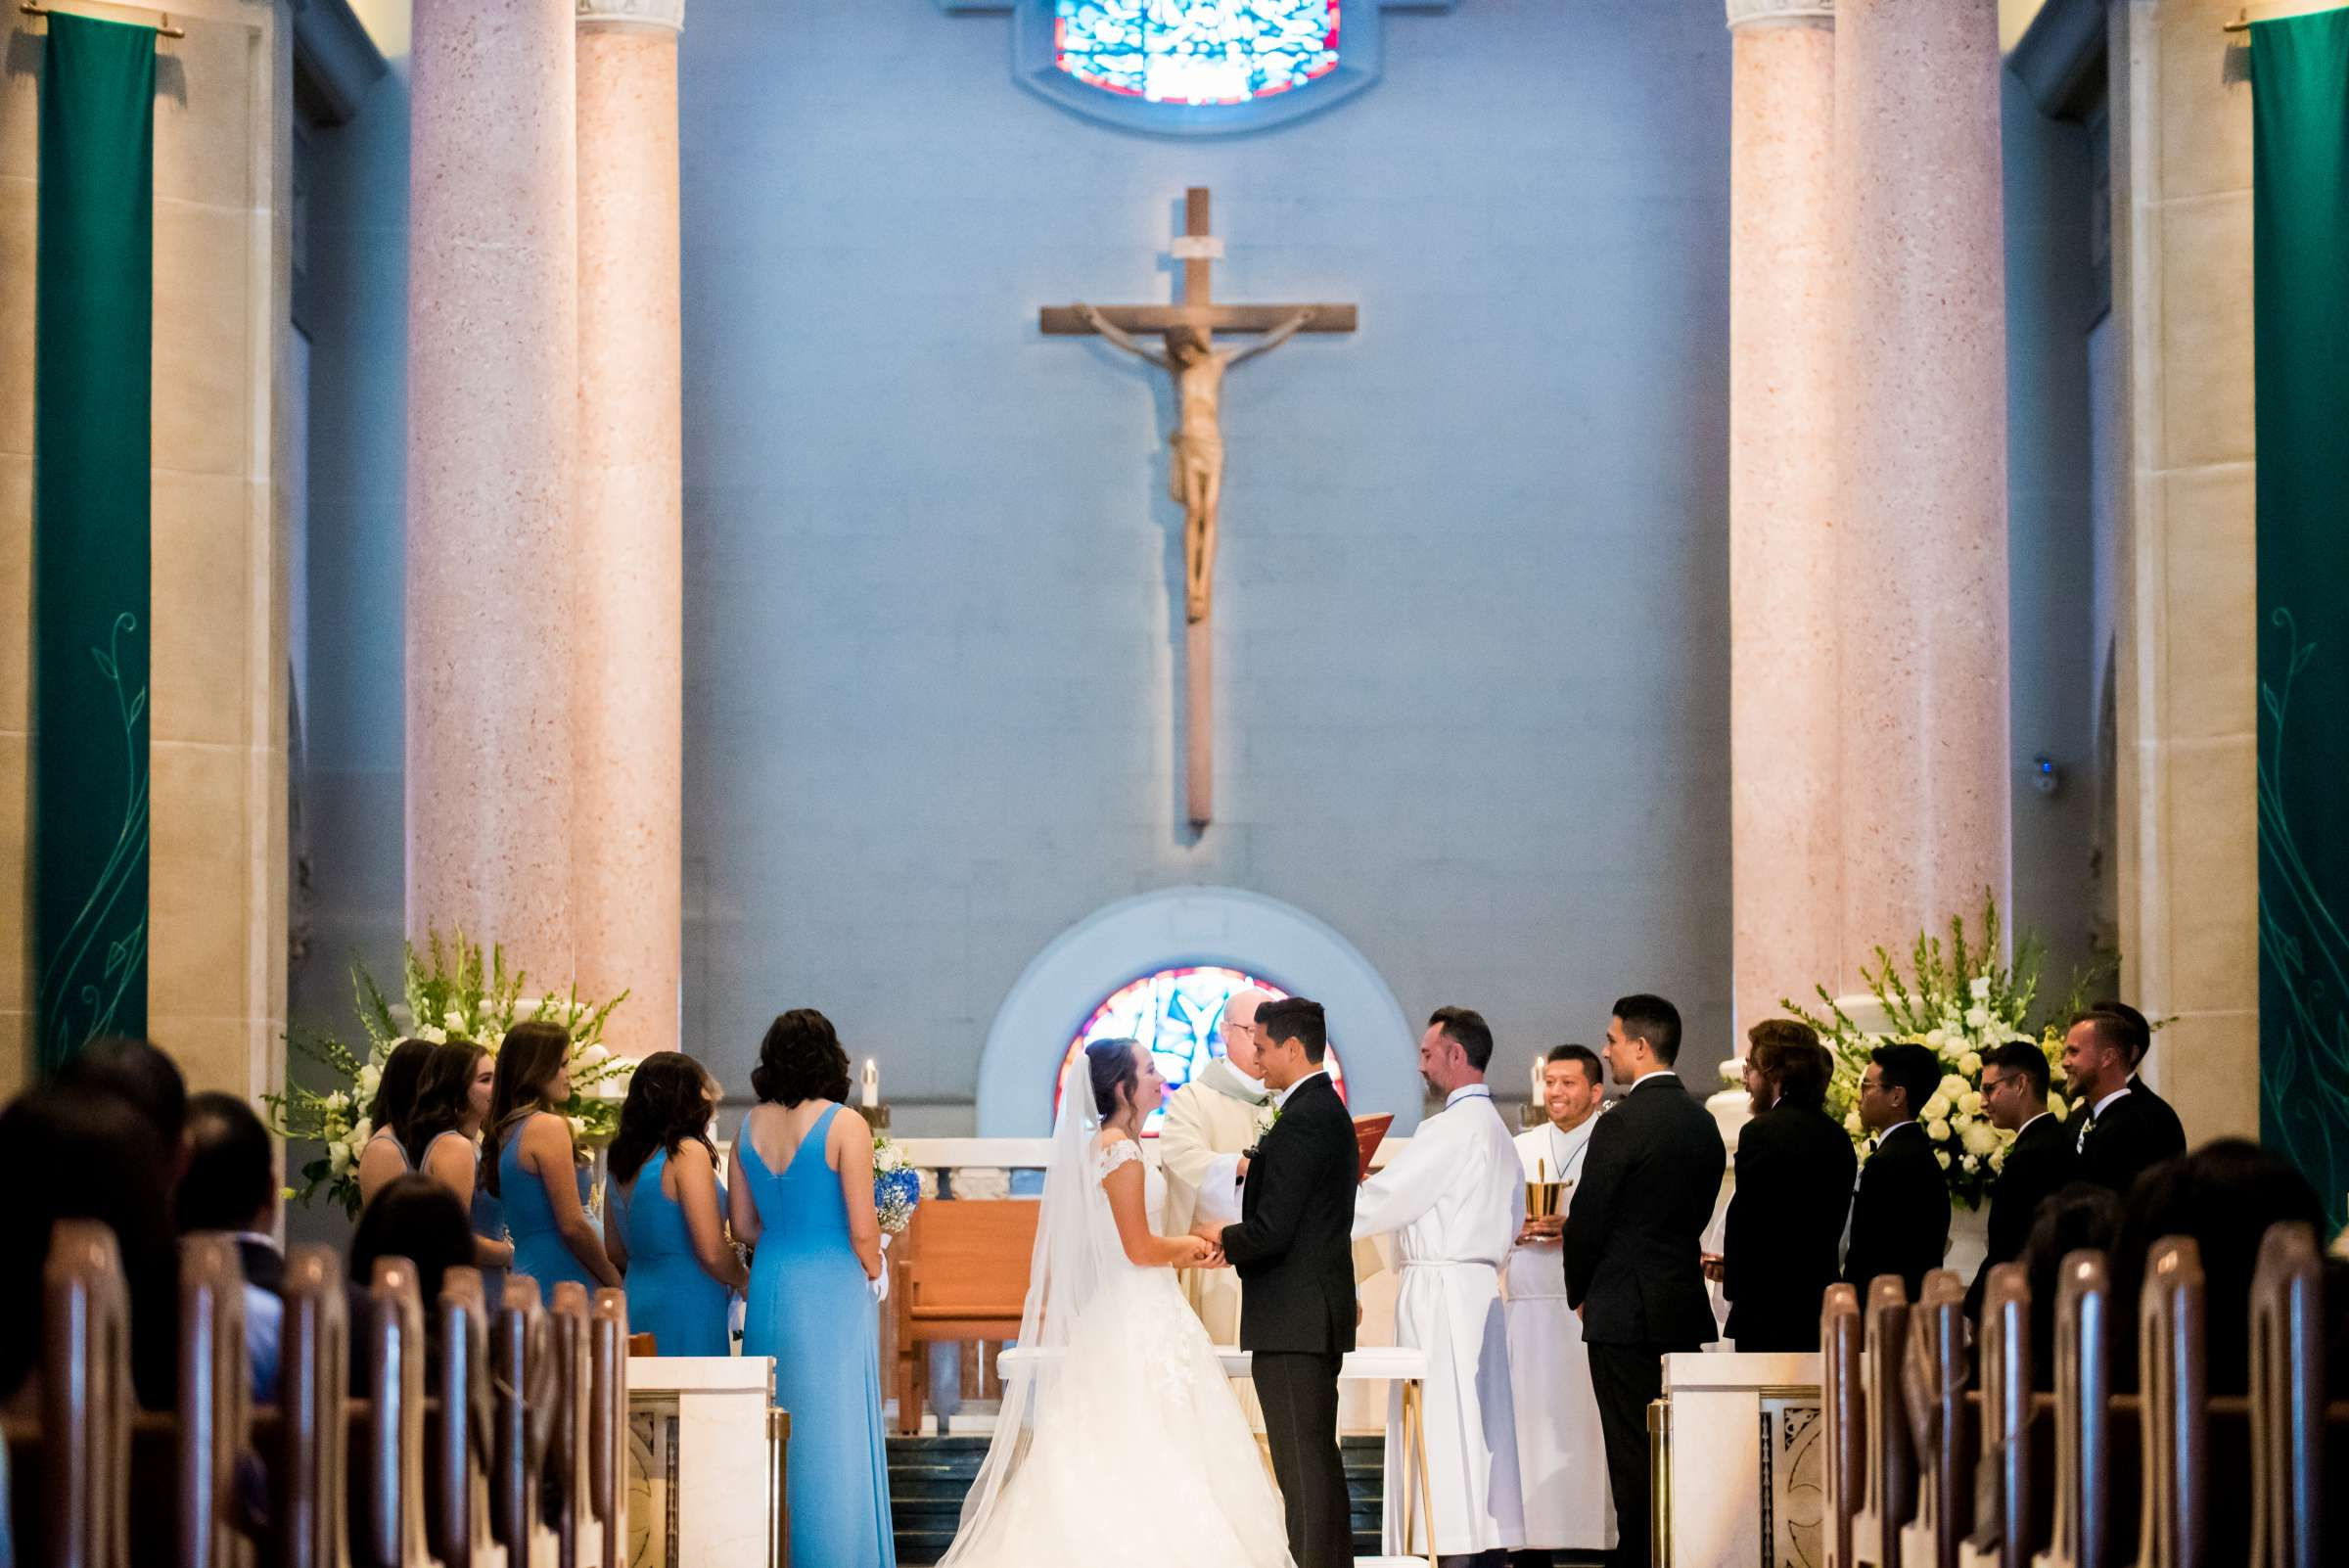 The Immaculata Wedding, Arianna and Jonah Wedding Photo #124 by True Photography